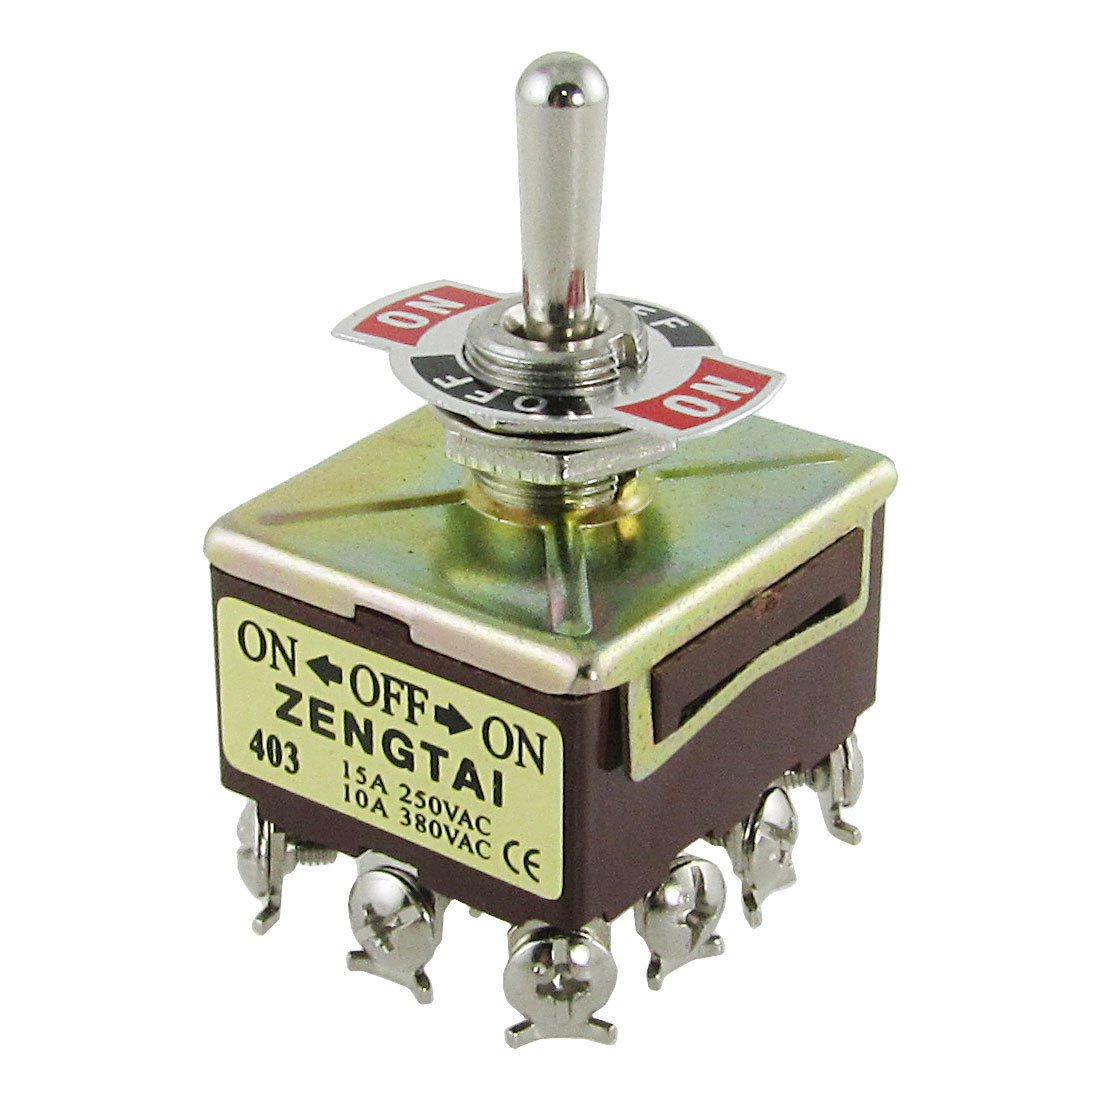 TEN403 10A/380VAC 15A/250VAC 3 Position 4PDT ON-OFF-ON 12 Pin Toggle Switch